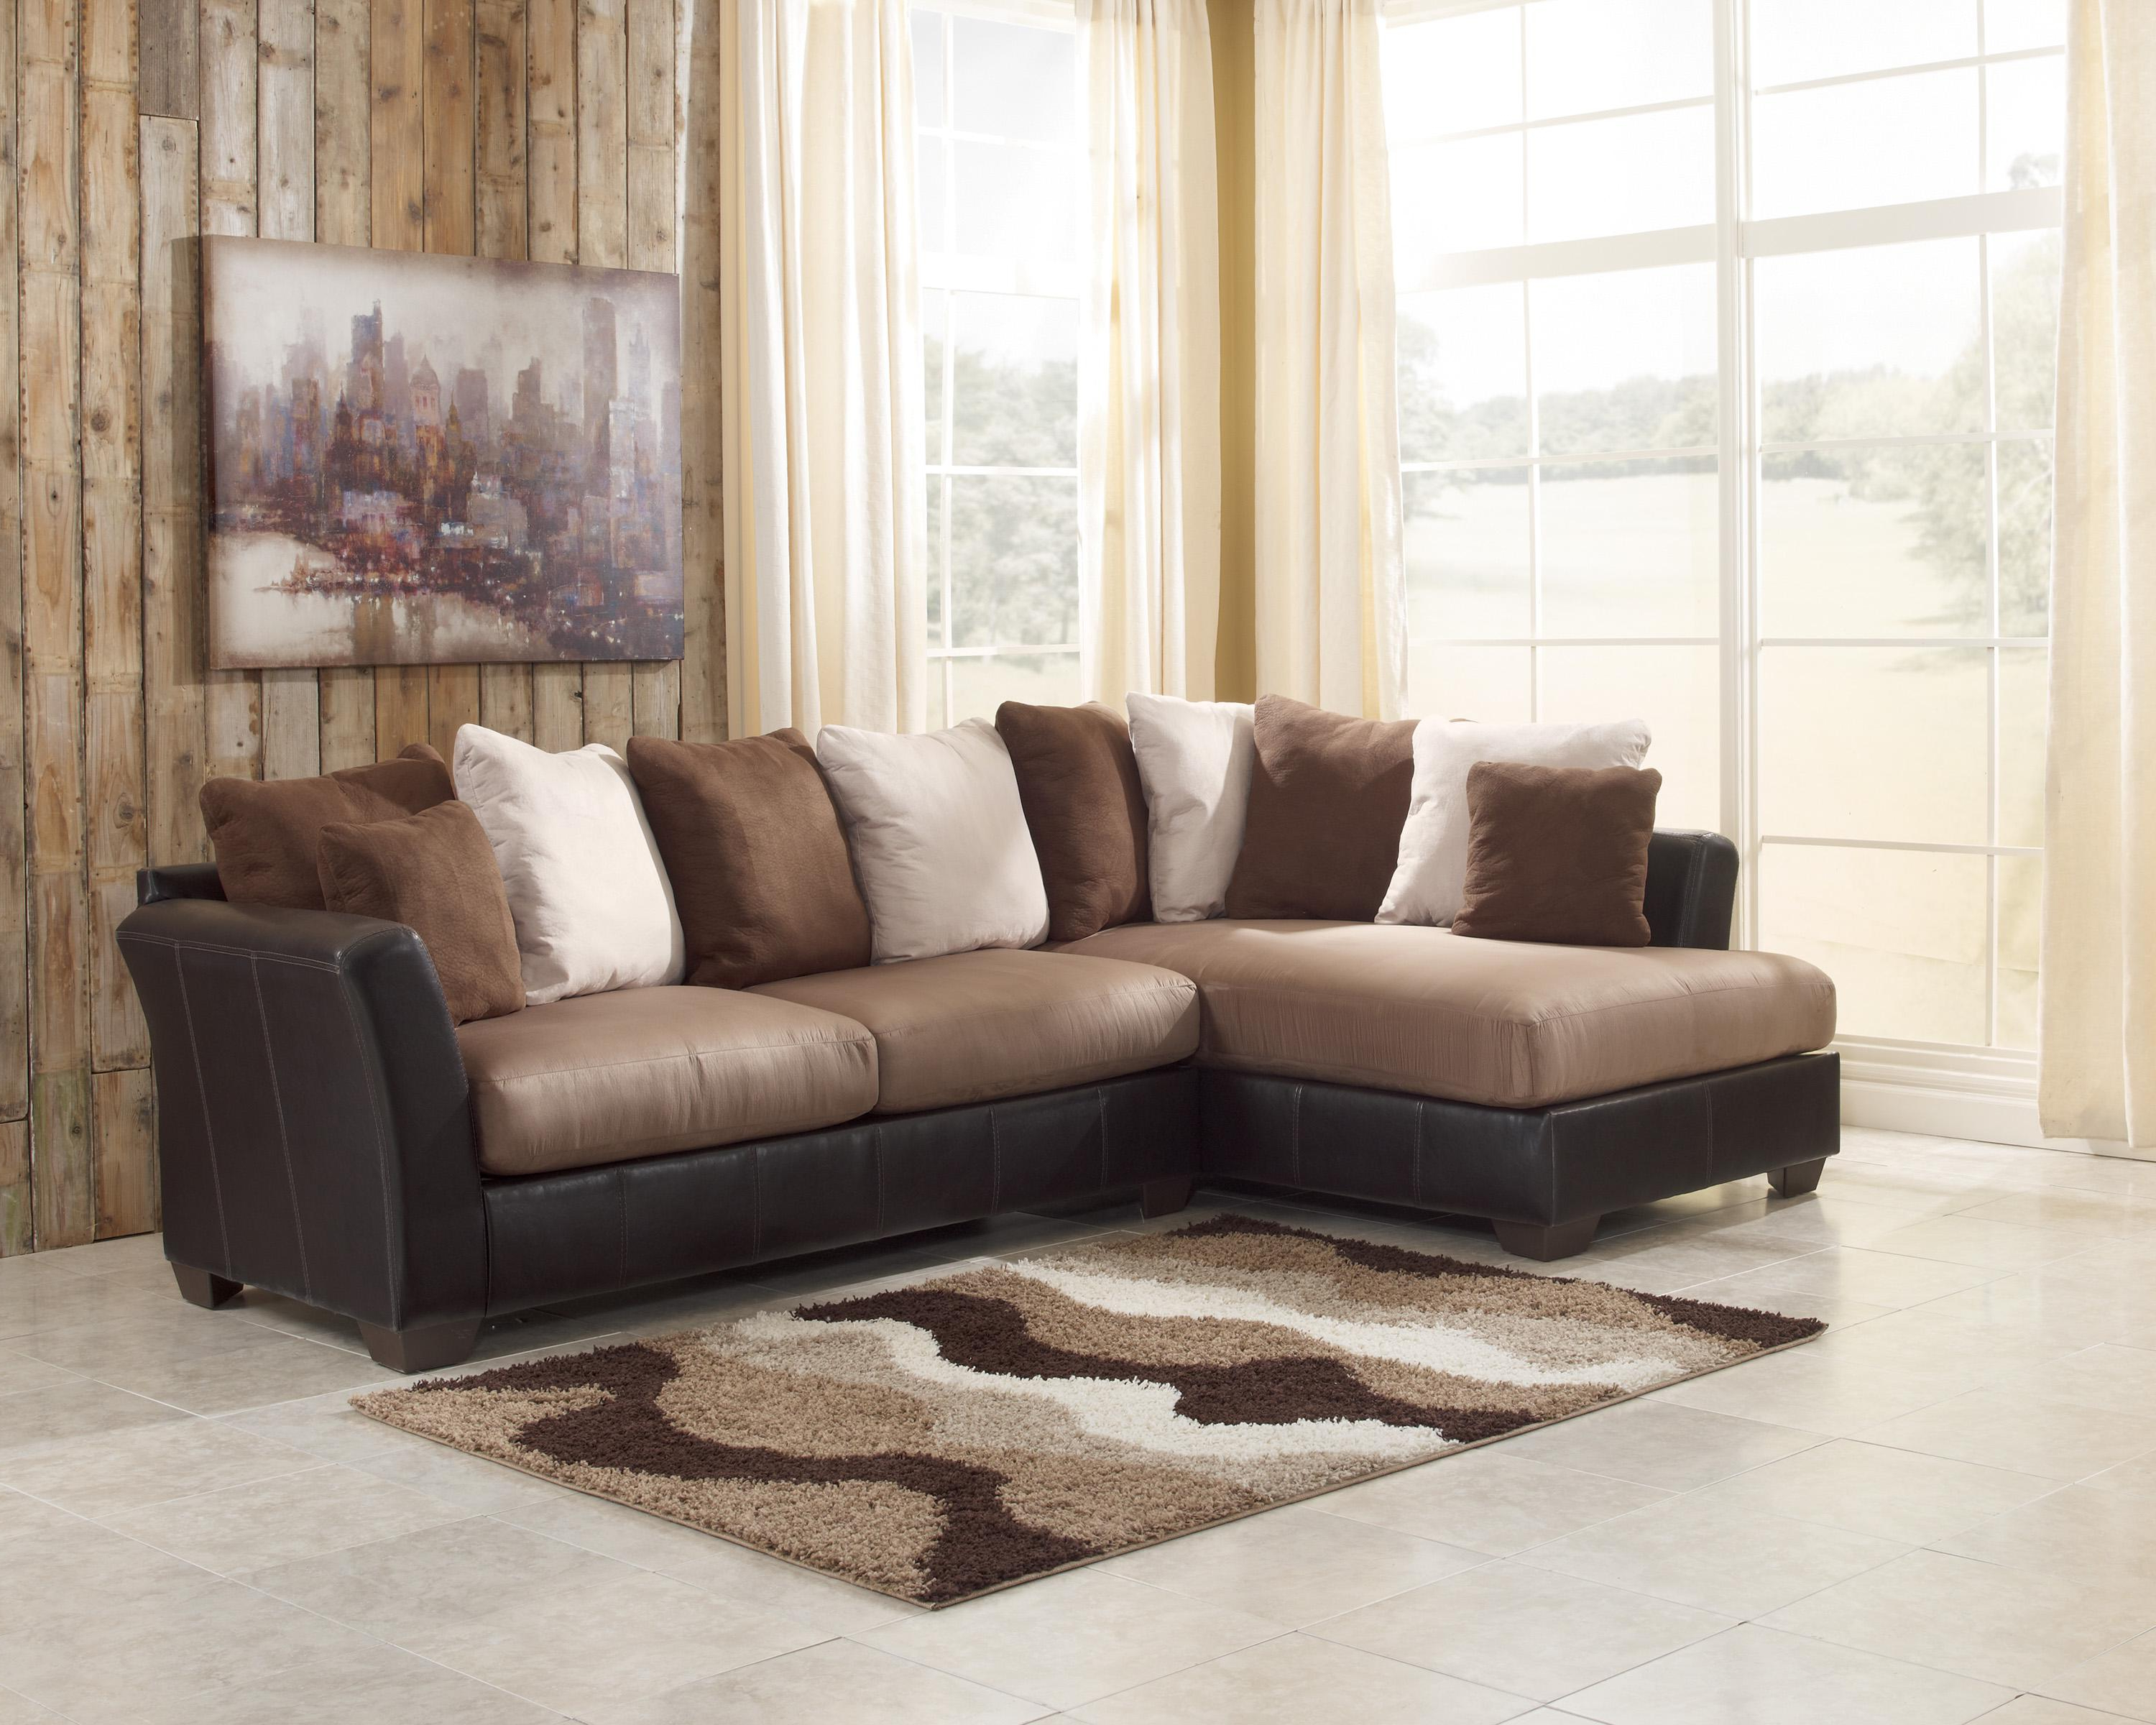 A 2 Piece Sectional Is A Unique Addition To Any Living Room – Elites For Preferred Evan 2 Piece Sectionals With Raf Chaise (View 6 of 20)